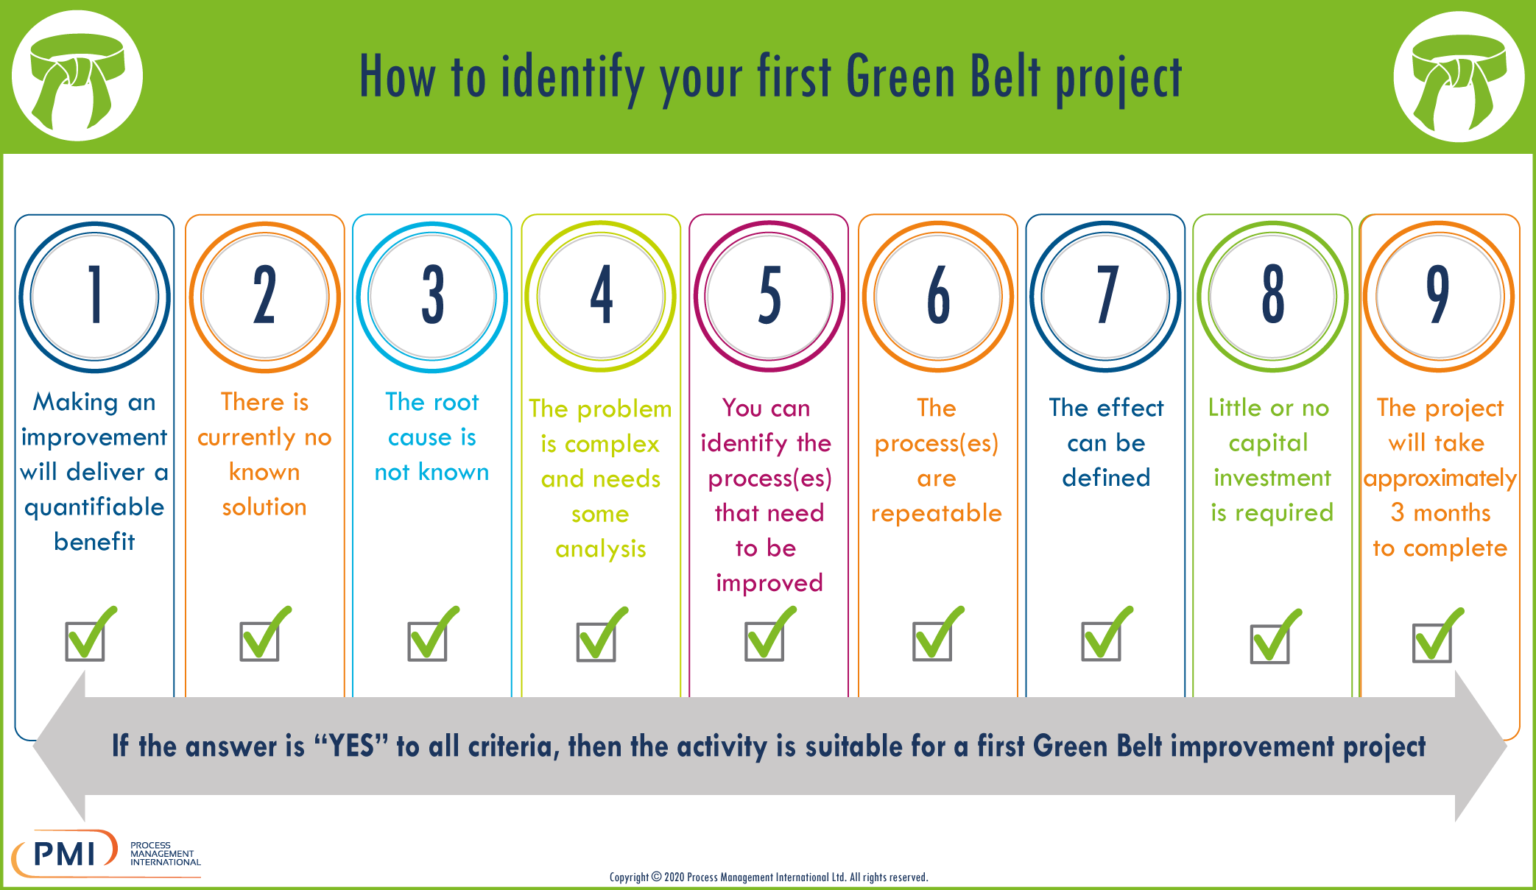 How to Identify your First Green Belt Project Infographic